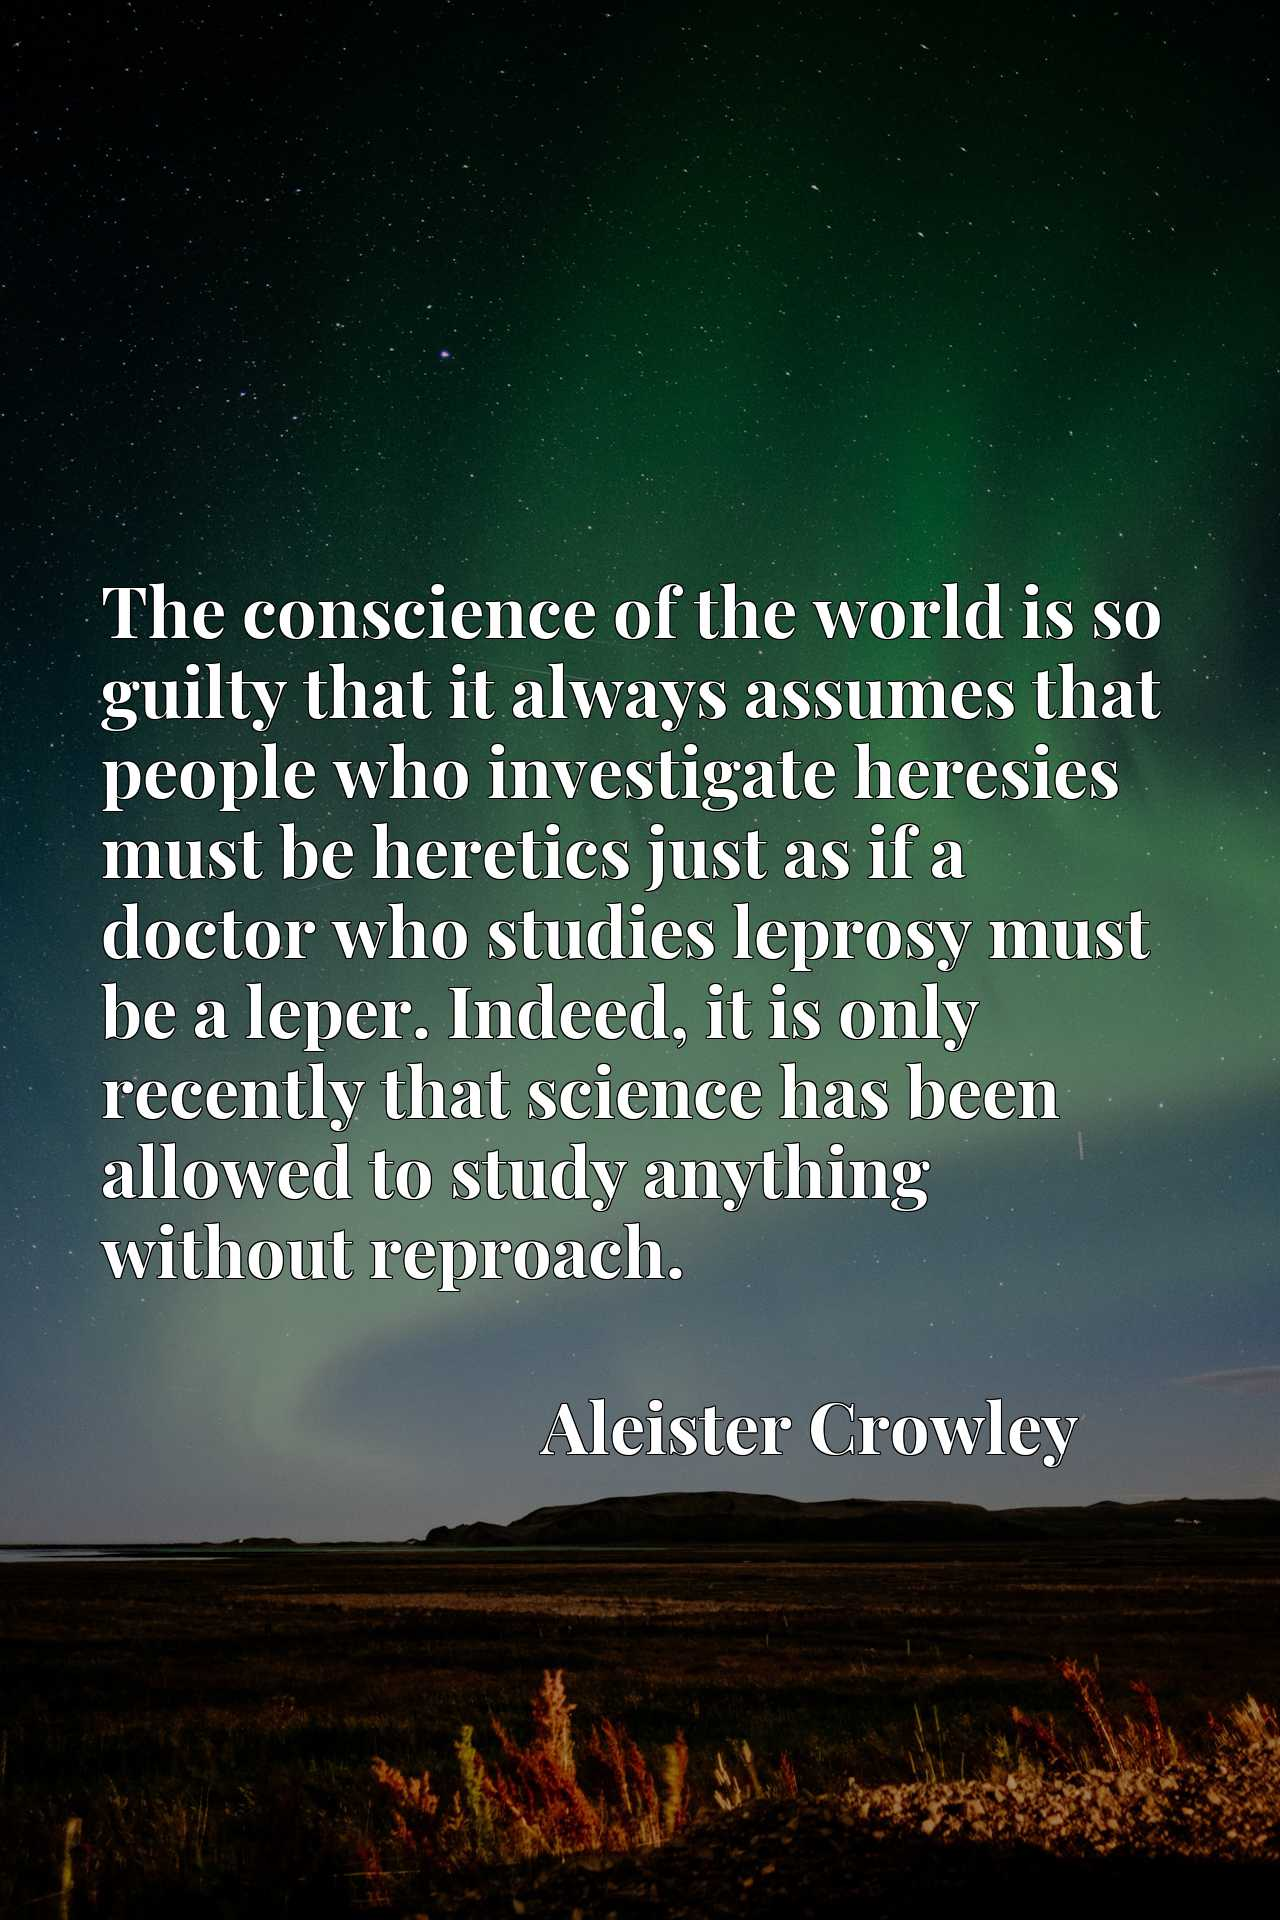 Quote Picture :The conscience of the world is so guilty that it always assumes that people who investigate heresies must be heretics just as if a doctor who studies leprosy must be a leper. Indeed, it is only recently that science has been allowed to study anything without reproach.